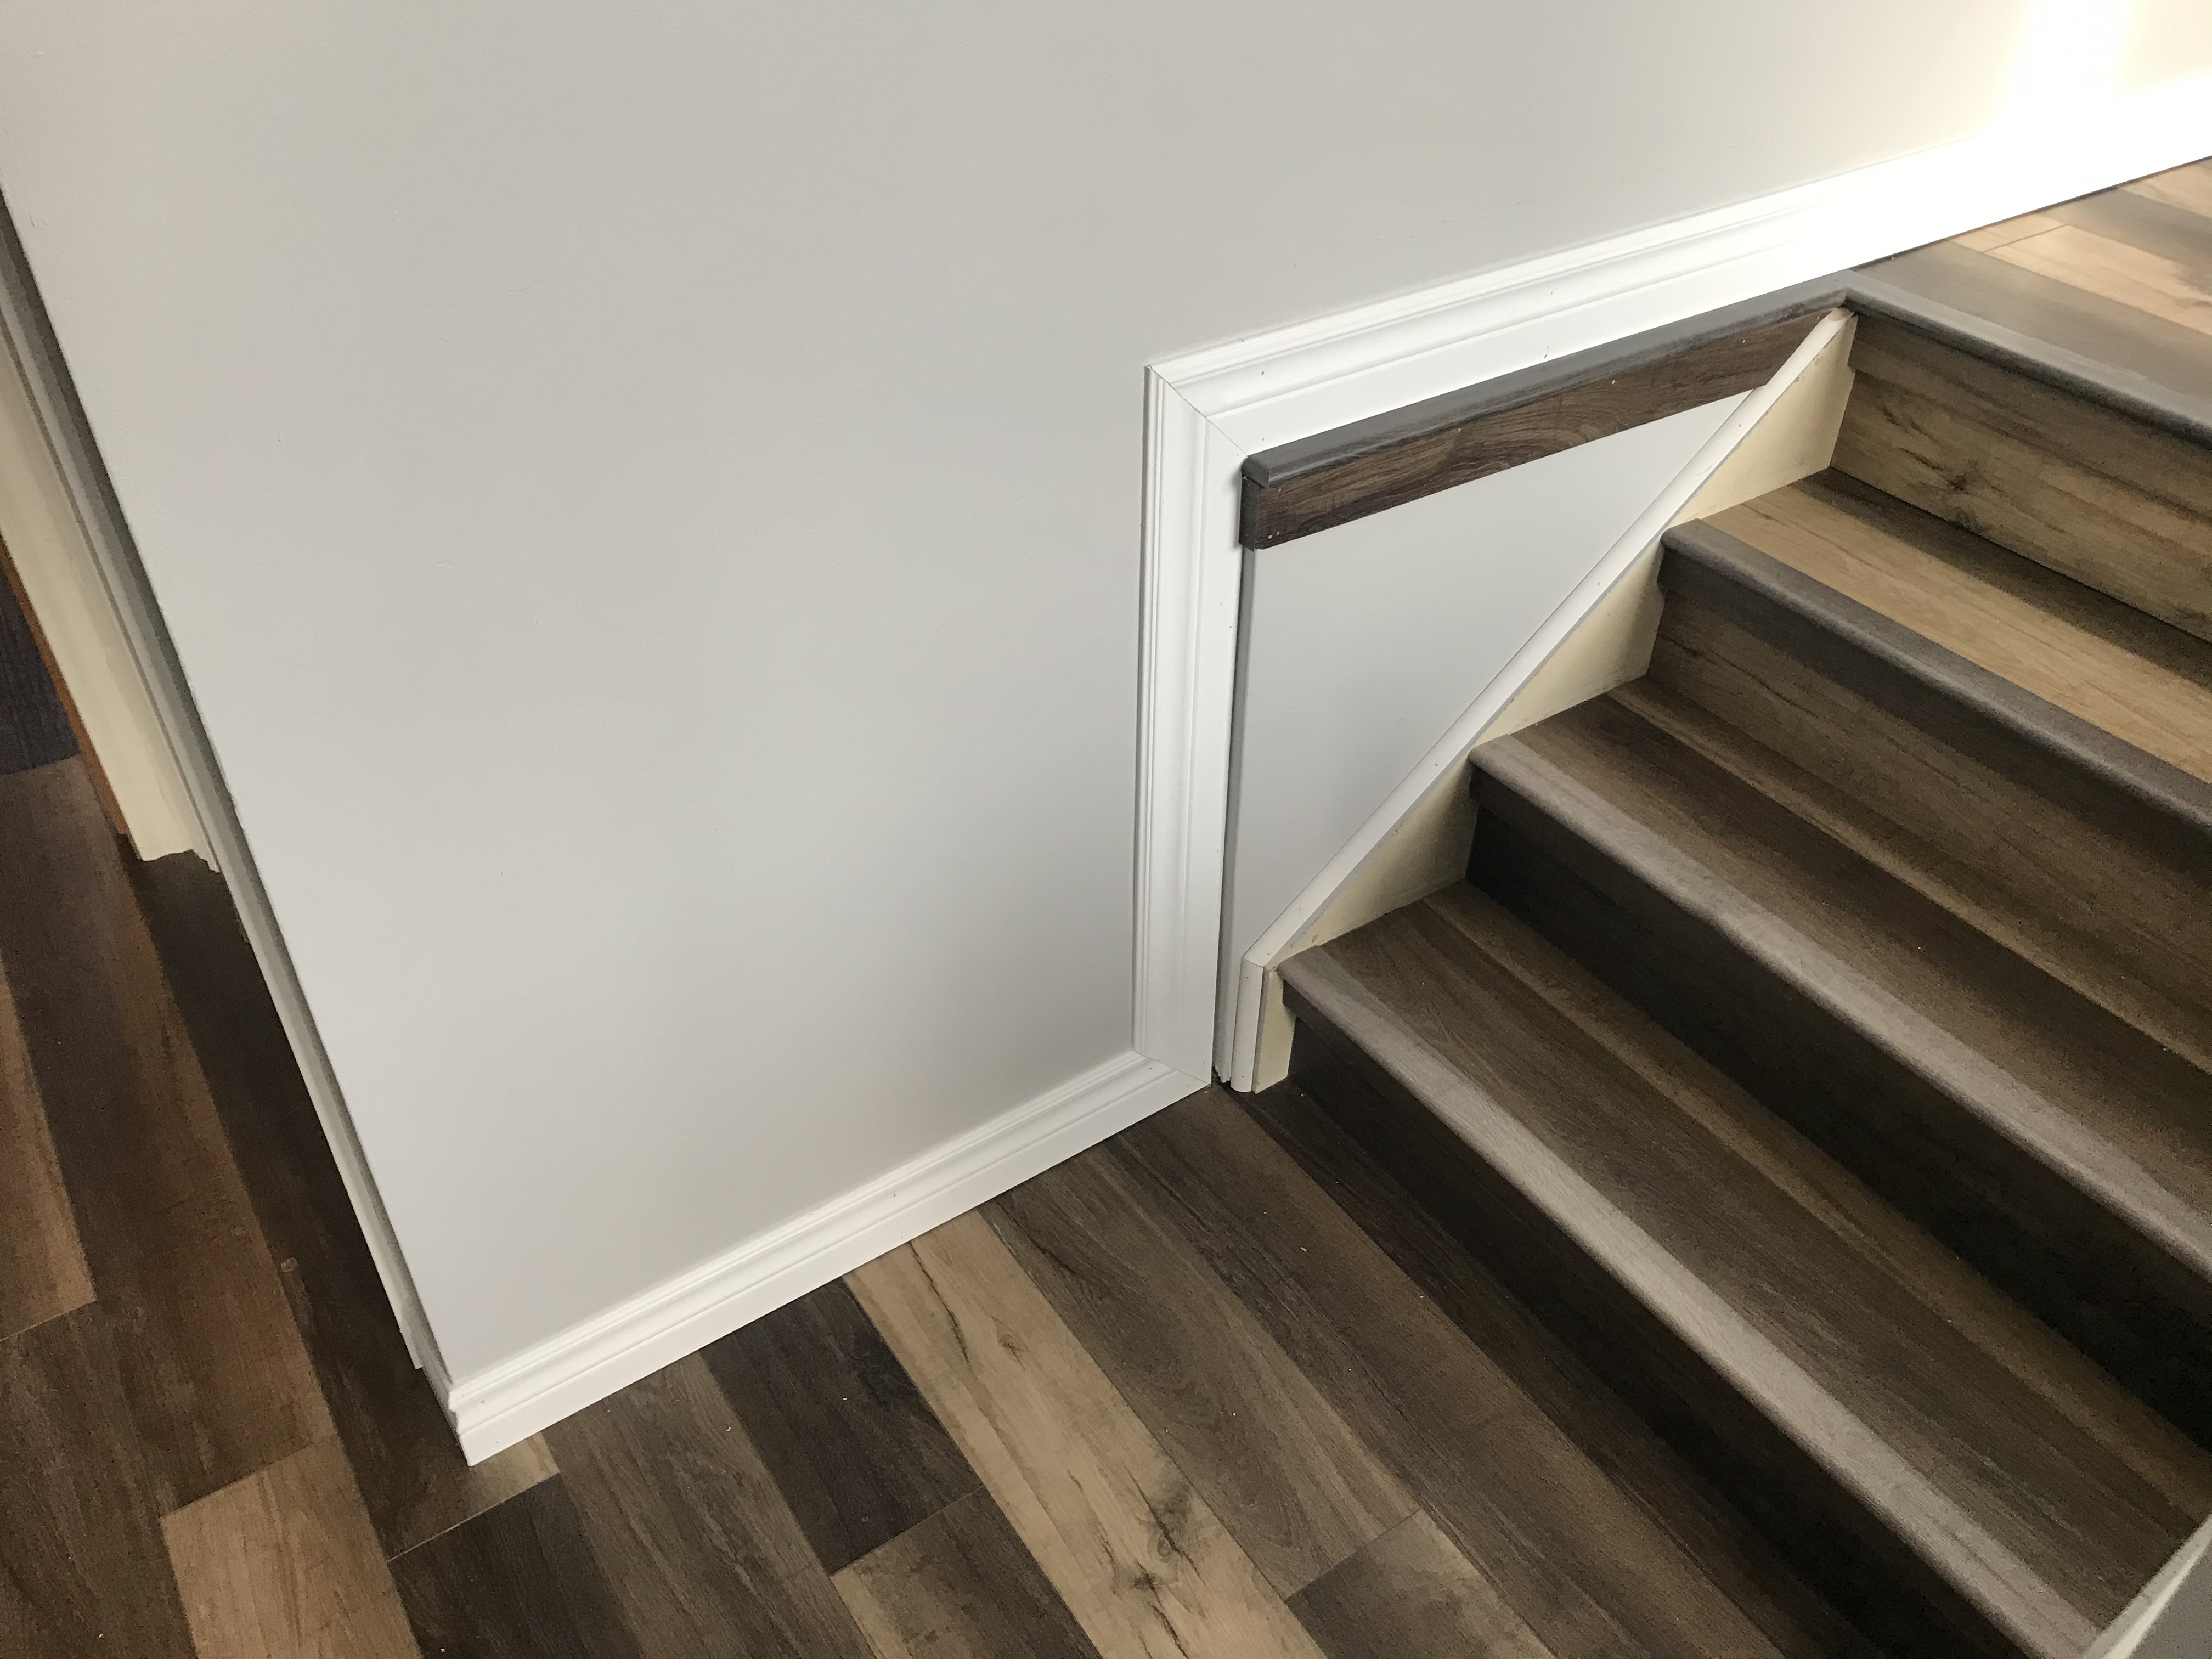 Trim work can sometimes require creative solutions.  Here, trim wraps around an awkward bump-out, while reused laminate flooring ties it all together.